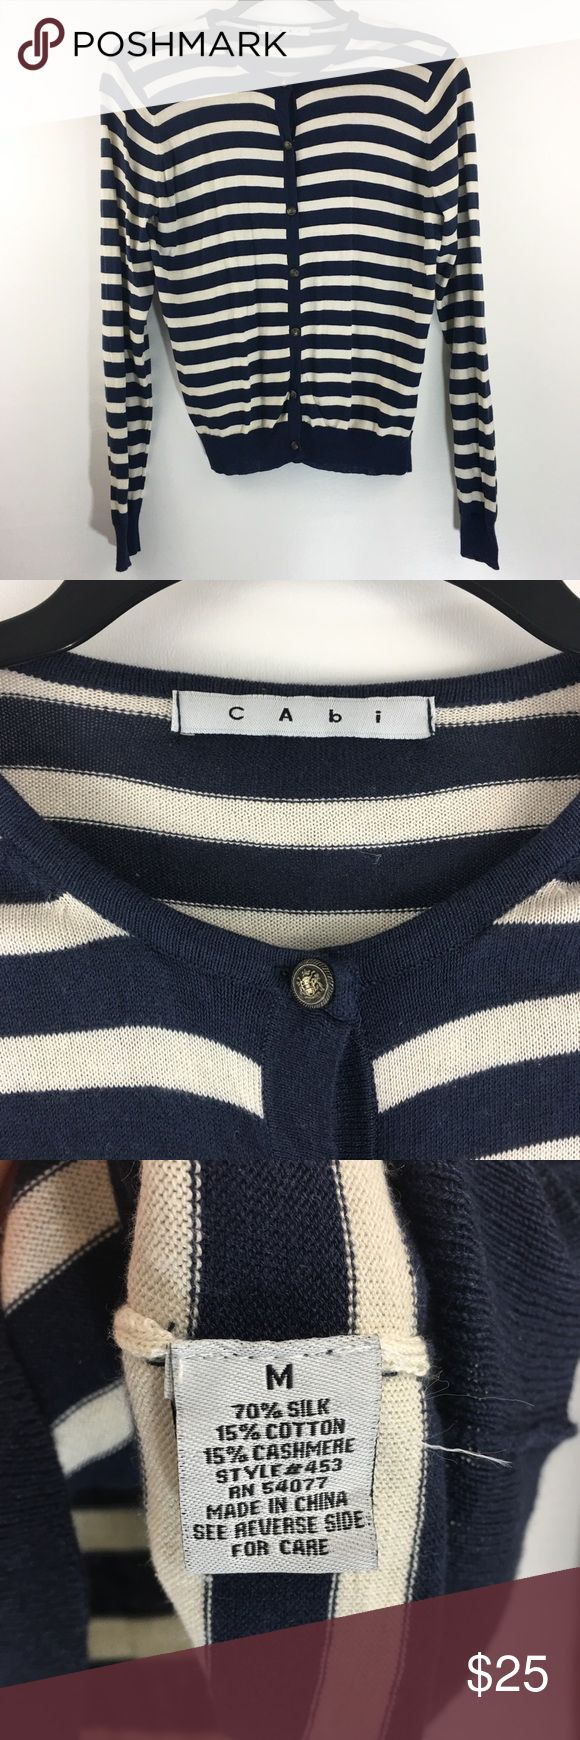 CAbi Navy & Cream Striped Nautical Cardigan#BI CAbi cardigan style#453. Navy & Cream. Size Medium. Gently worn in great condition no rips or stains. Smoke Free Home.  Approximate Measurements: 18' Underarm to Underarm  25' Sleeves 22'Length CAbi Sweaters Cardigans